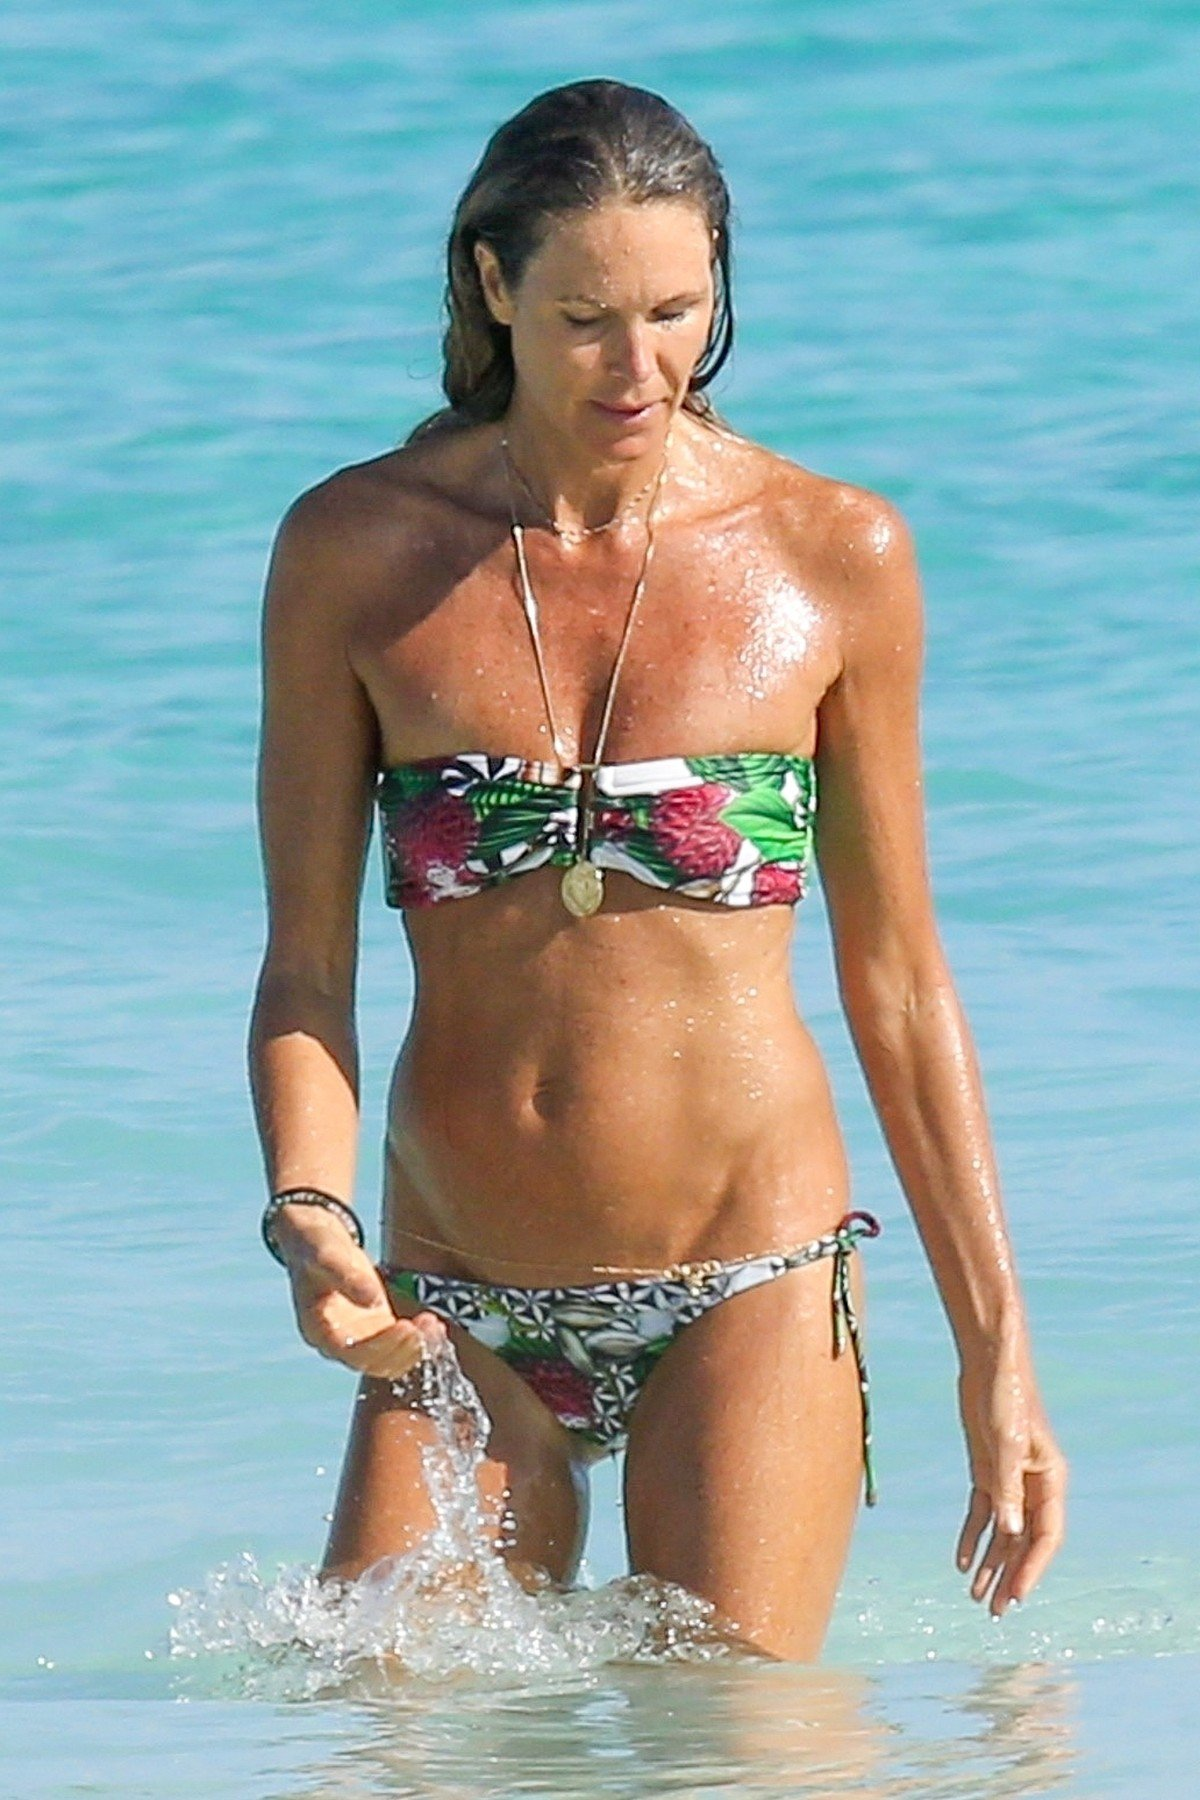 *EXCLUSIVE* ** RIGHTS: WORLDWIDE EXCEPT IN ITALY, UNITED KINGDOM ** Bahamas, BAHAMAS  - *PREMIUM-EXCLUSIVE*  - Elle MacPherson has been pictured enjoying a beach break during New Year's holidays down in the Bahamas.  Pictured: Elle Macpherson  BACKGRID USA 3 JANUARY 2018, Image: 359156397, License: Rights-managed, Restrictions: , Model Release: no, Credit line: Profimedia, AKM-GSI